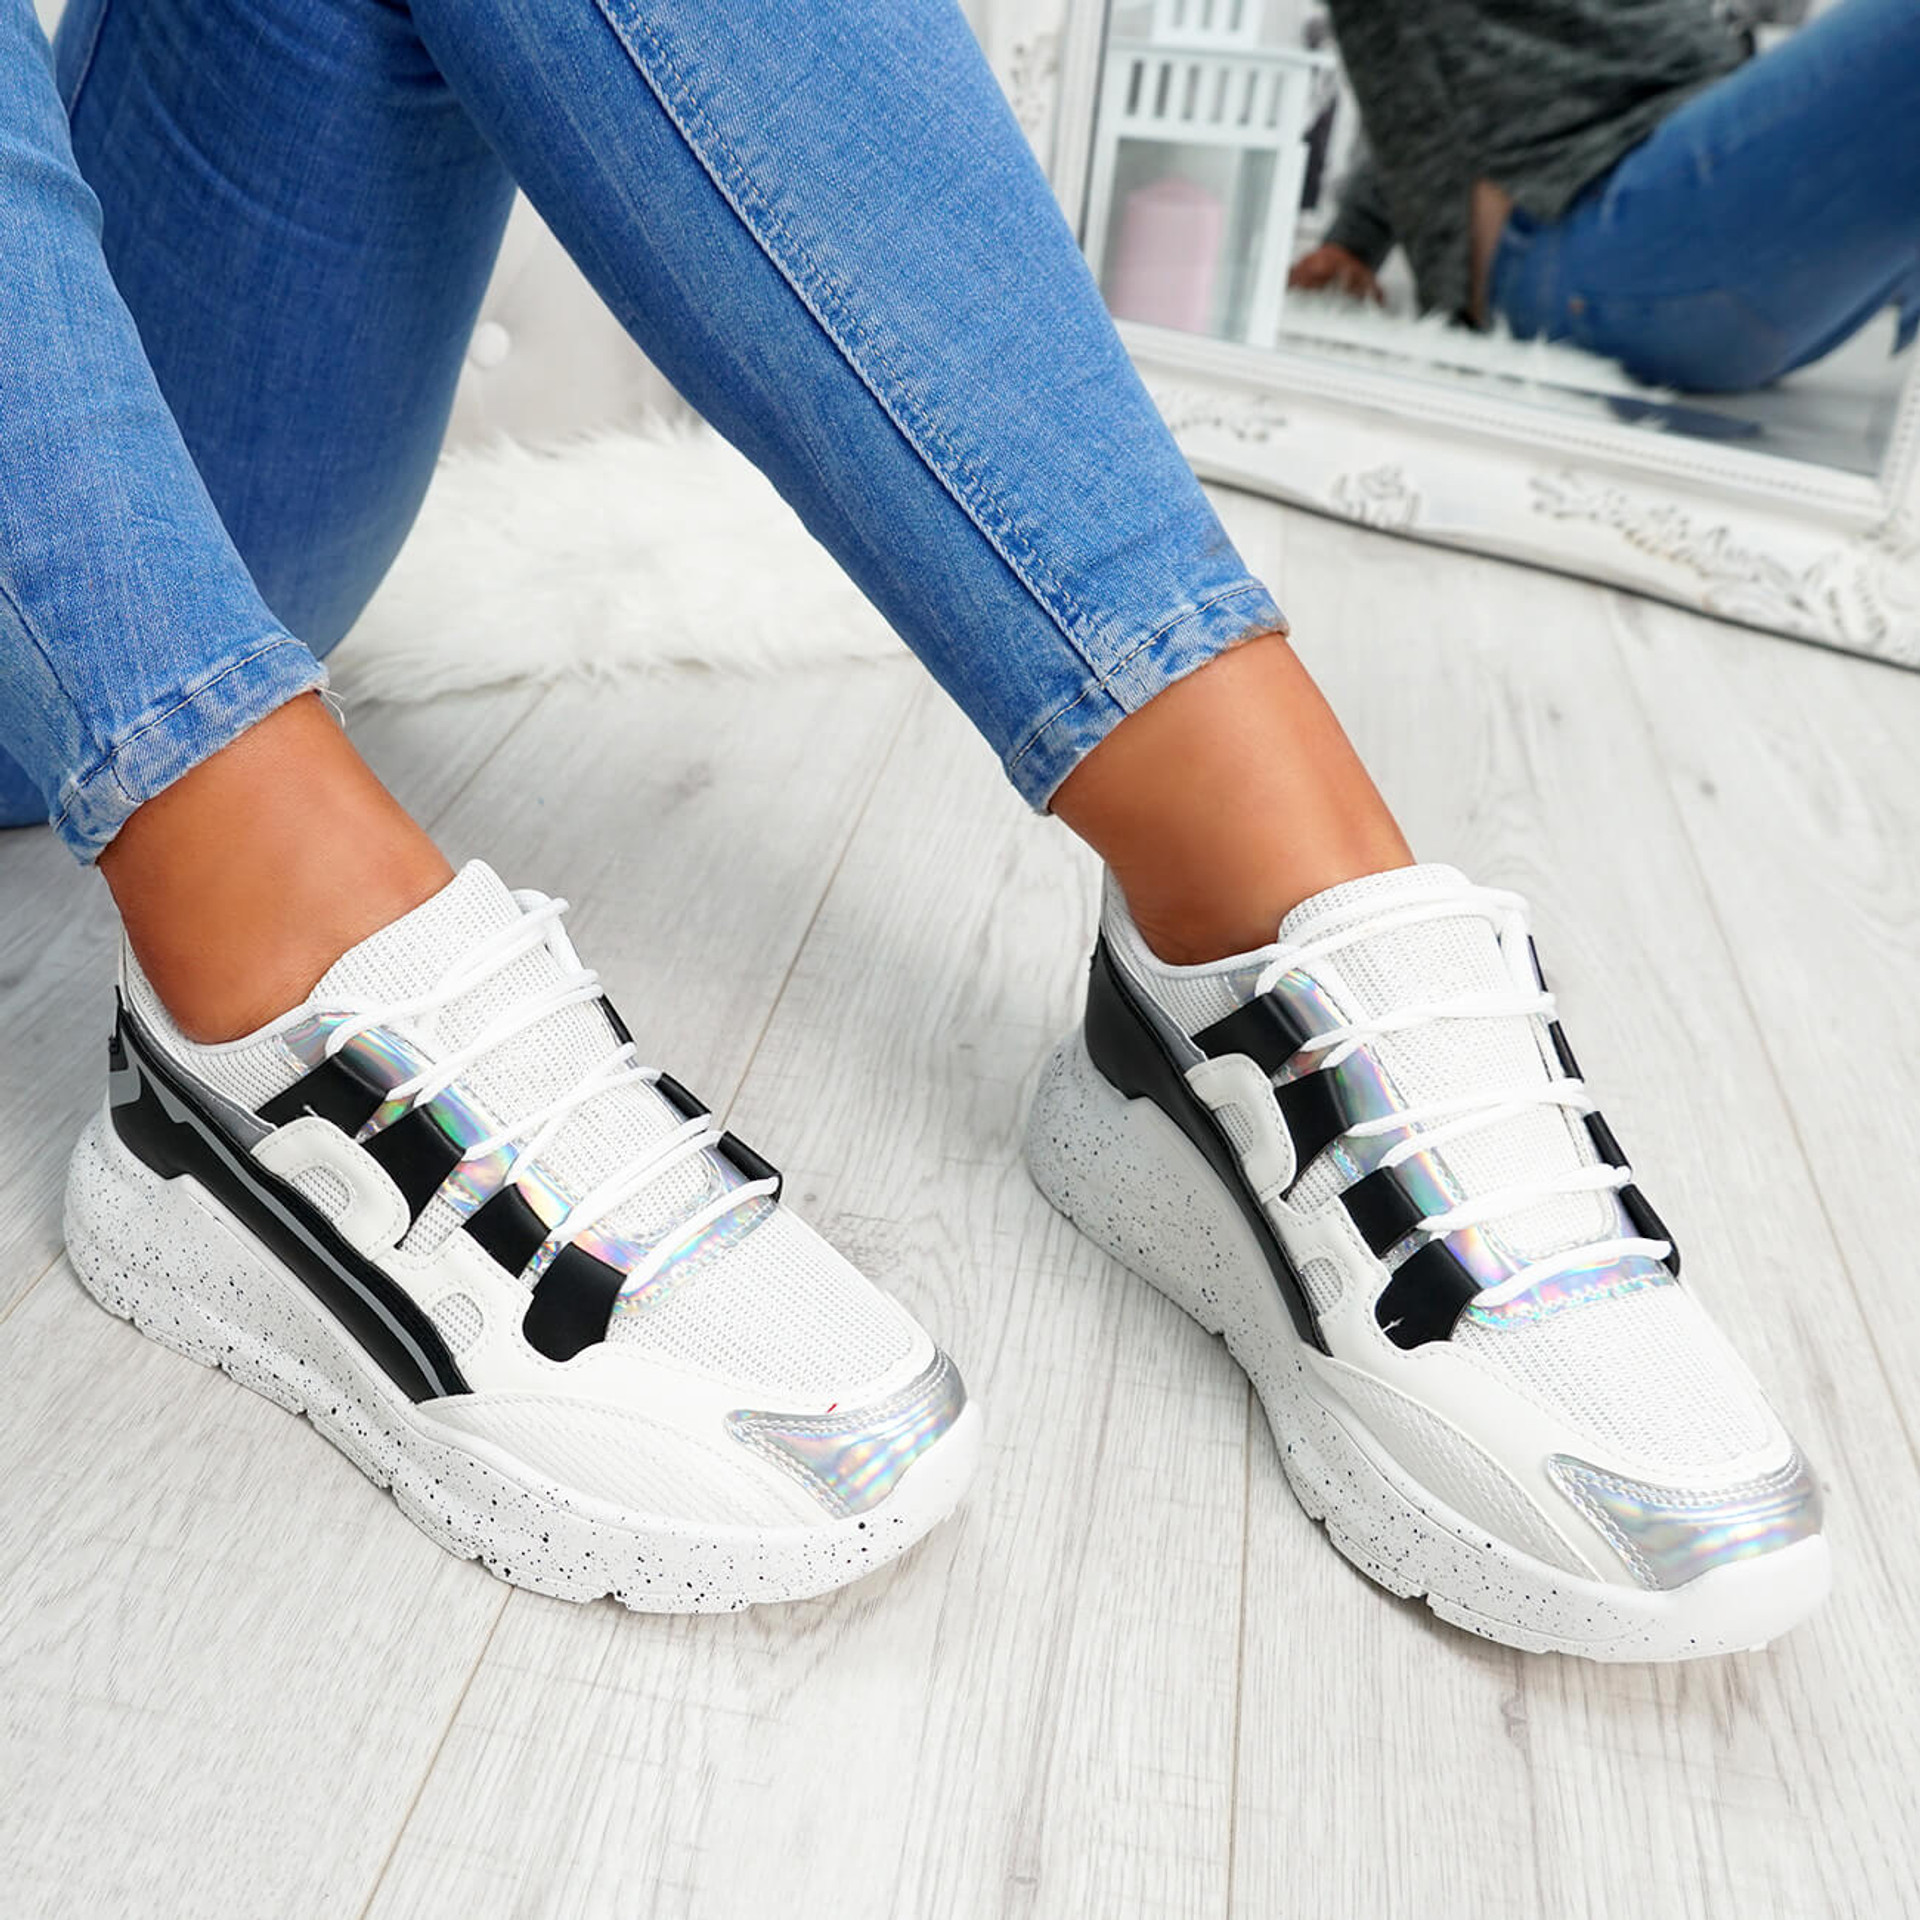 womens black and white lace-up trainers chunky sole patent mesh size uk 3 4 5 6 7 8